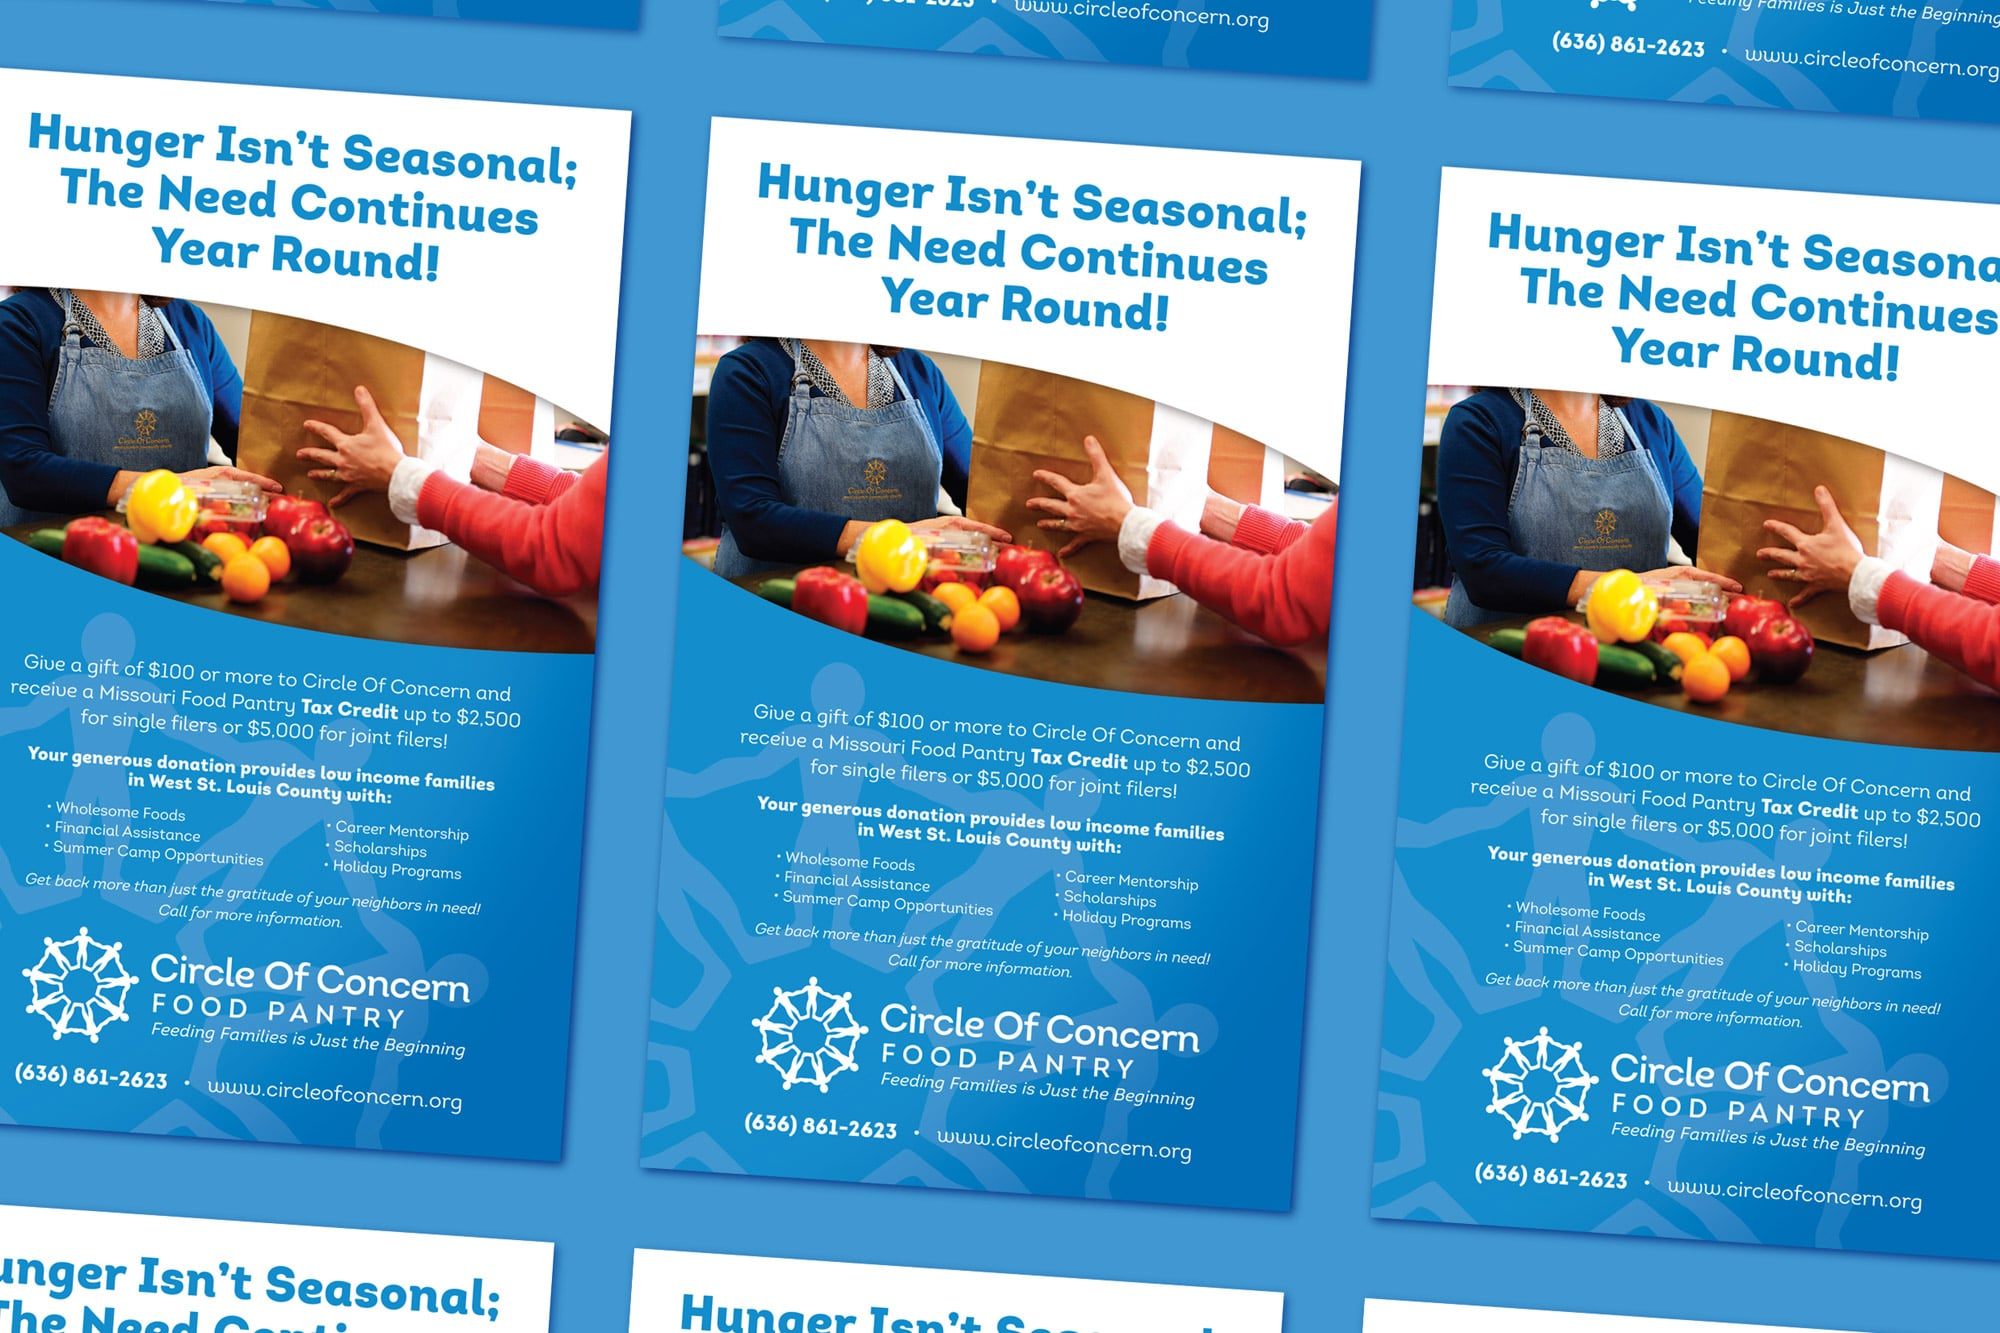 Hunger Isn't Seasonal Ad Design